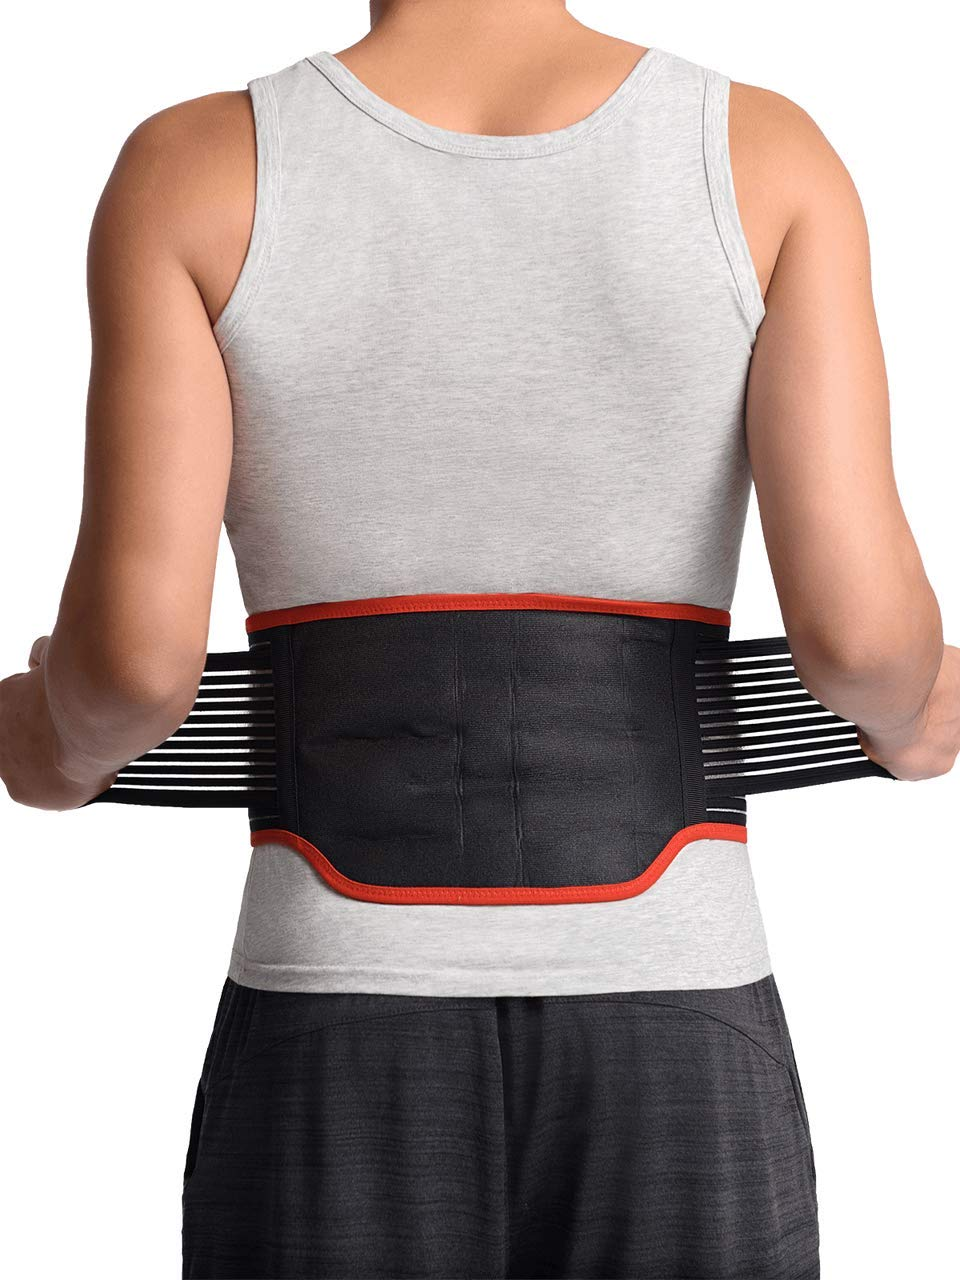 """Maxar BMS-511 Lumbar Support Back Brace with 31 Powerful Magnets, Far Infrared Technology, Magnetic Therapy Belt, Pain and Stress Relief, Sciatica, Scoliosis, Herniated Disc, Small 28""""-32"""""""